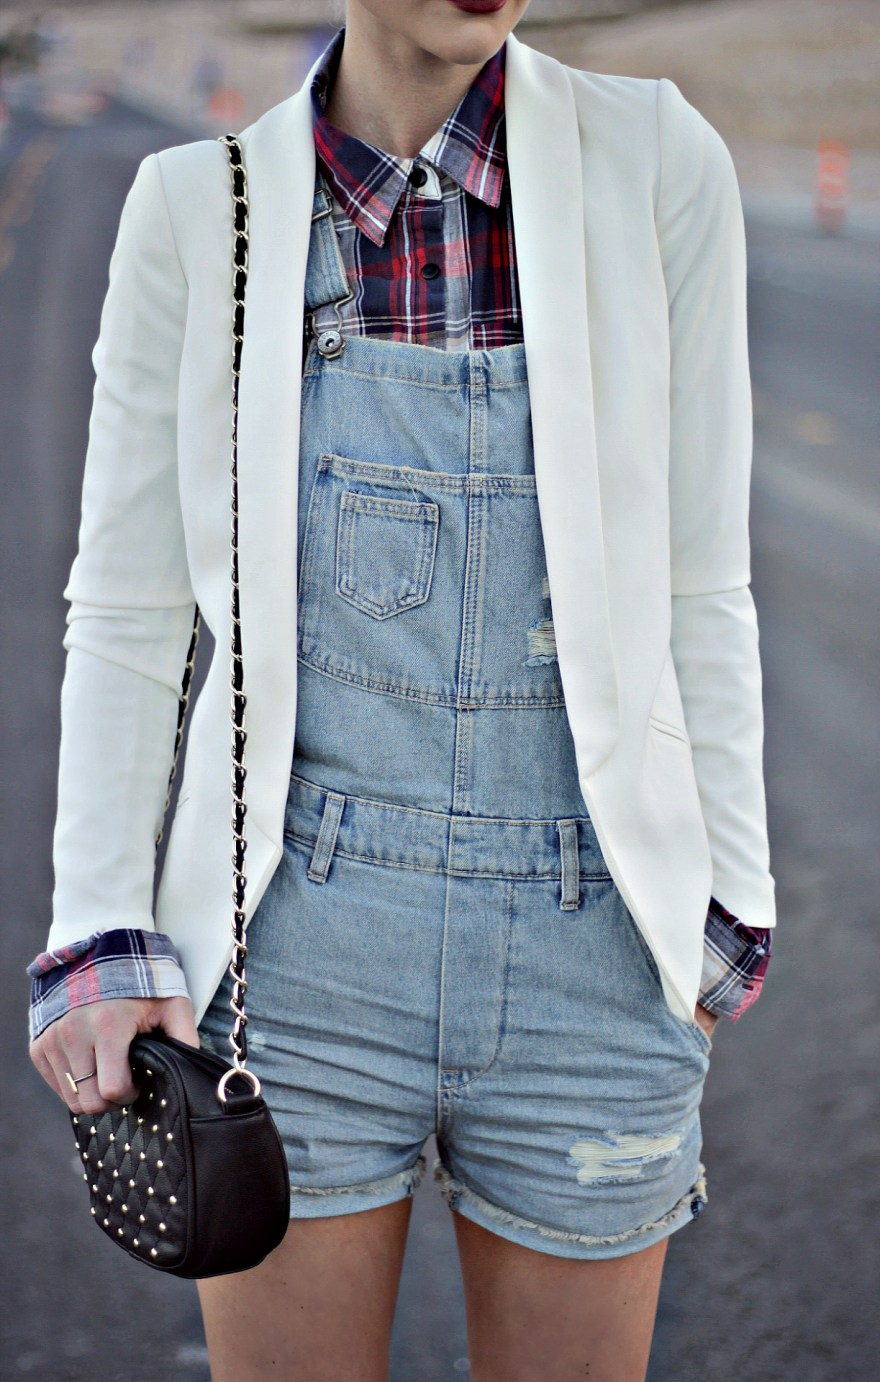 overalls-plaid-shirt-blazer-white-blazer-jacket-leopard-print-platinum-hair-las-vegas-fashion-blogger-lindsey-simon-5